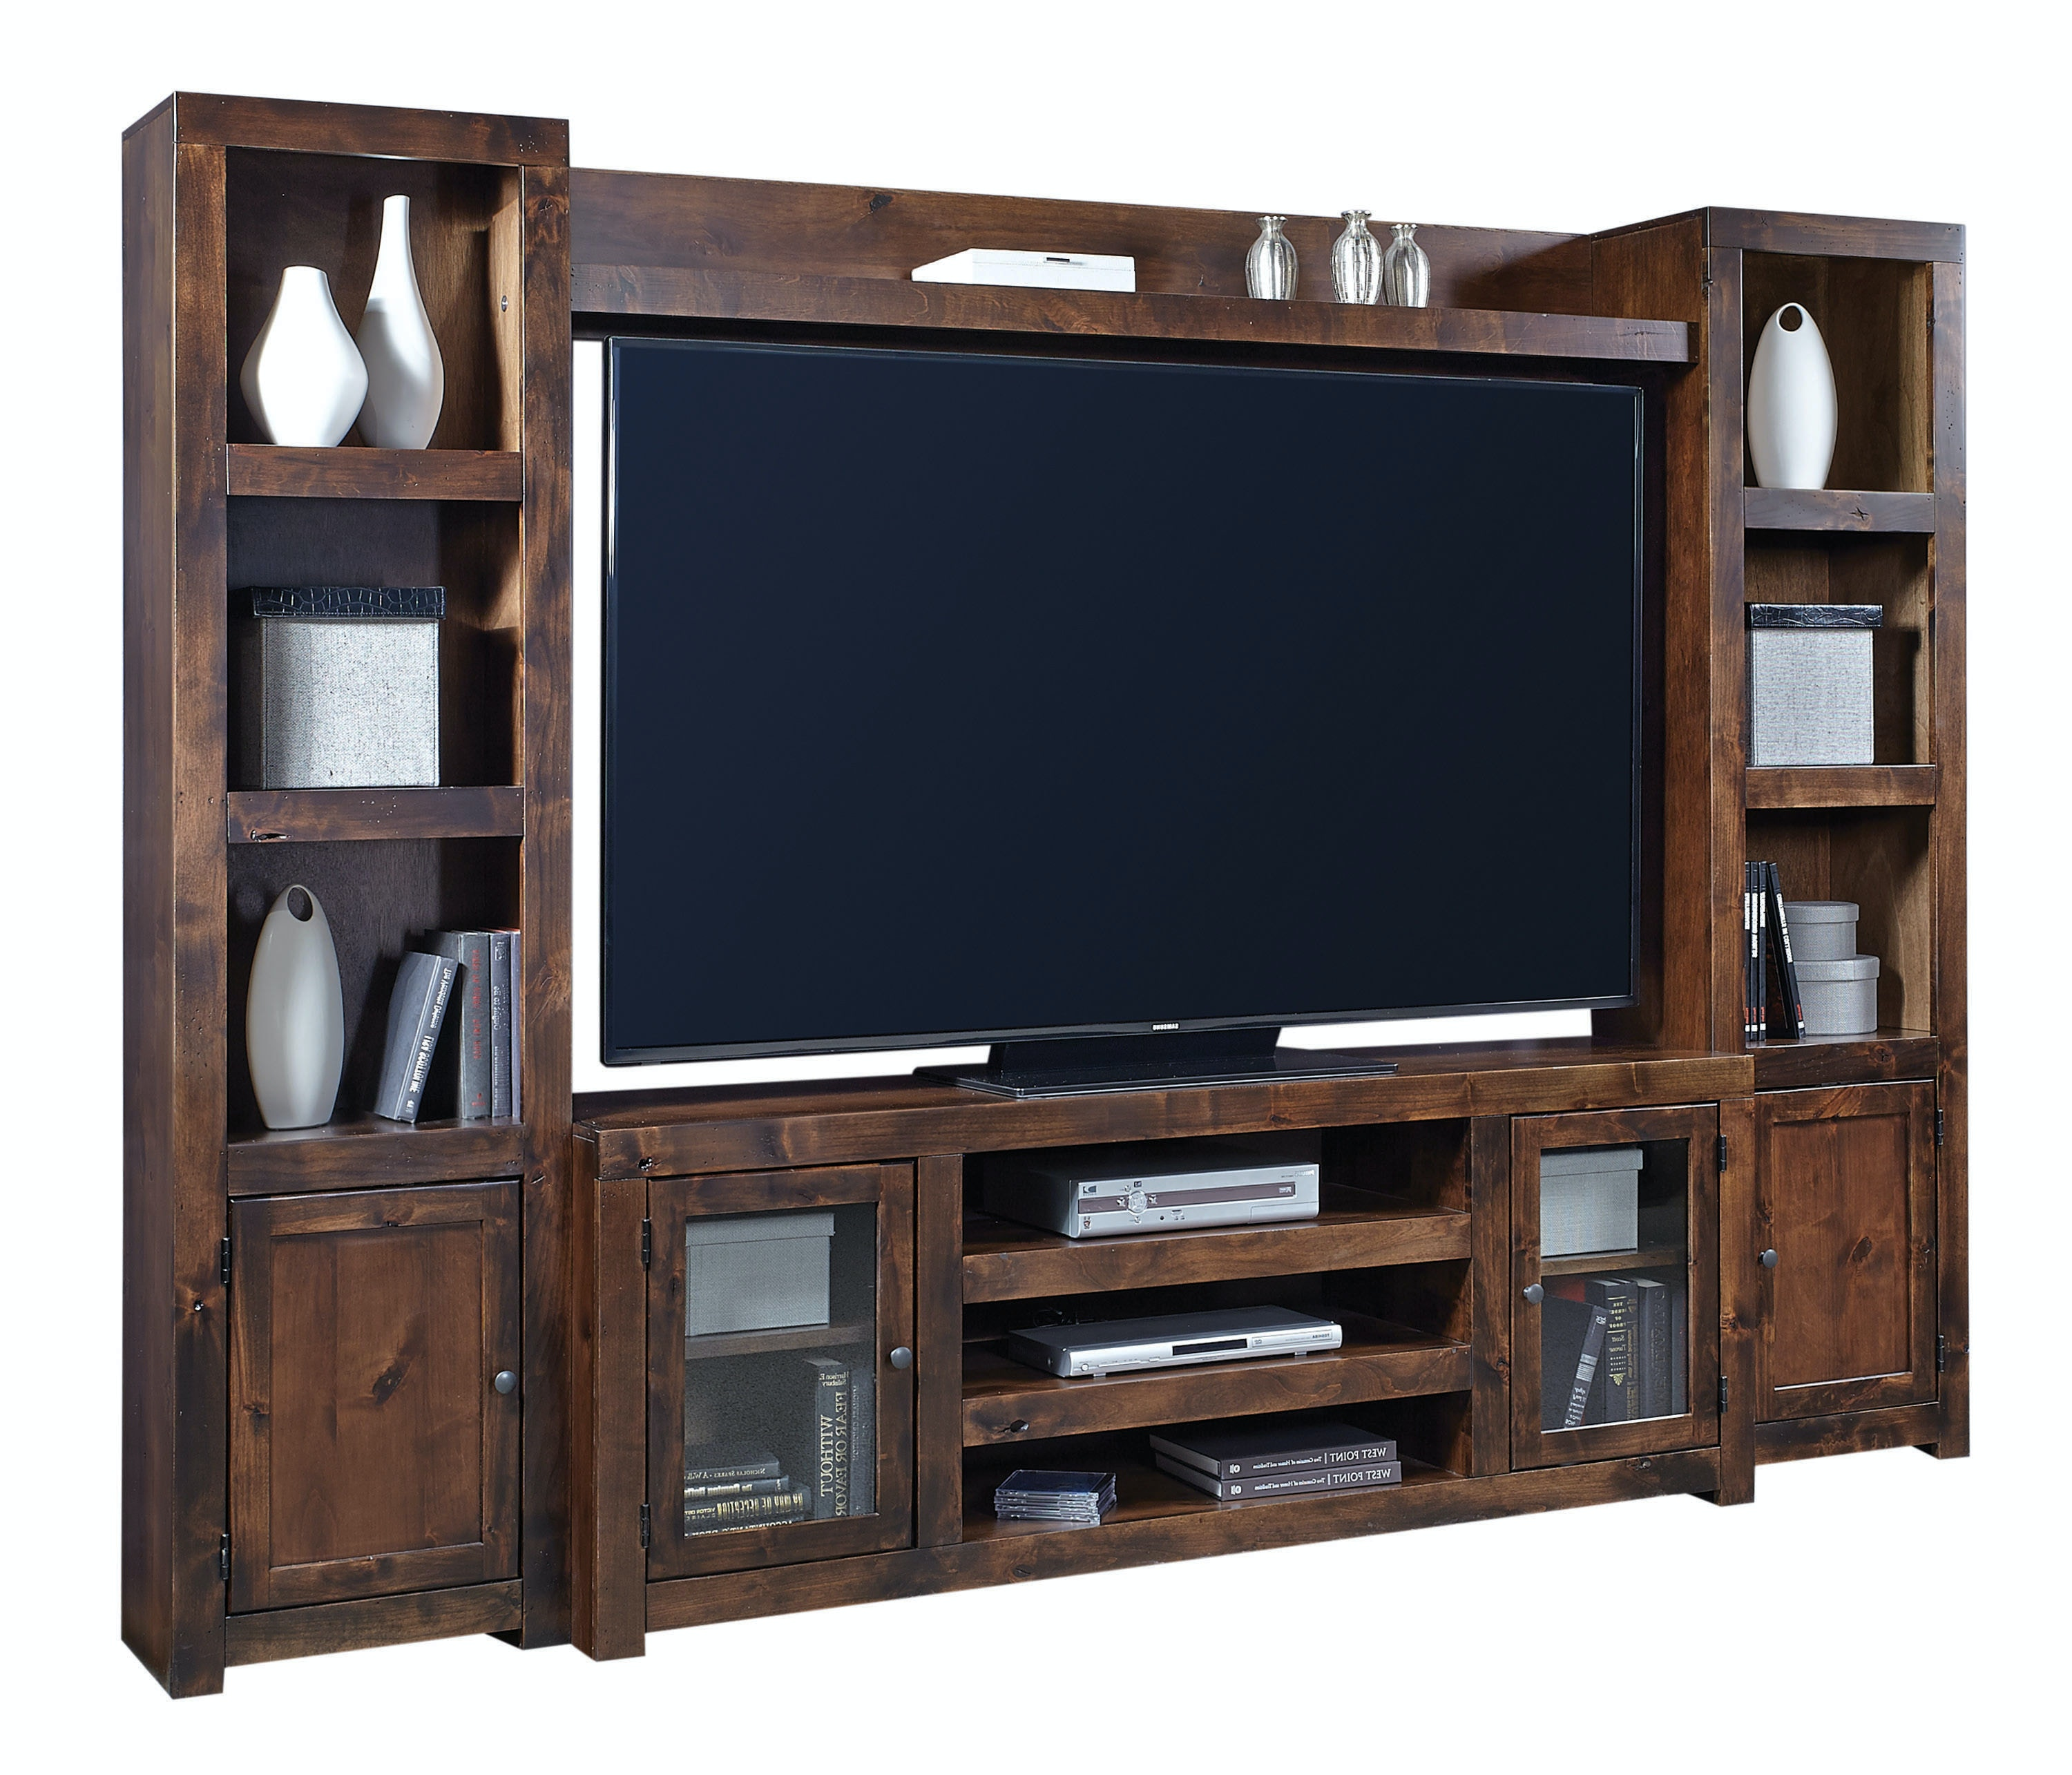 Contemporary Alder 72 Media Console ST:427710